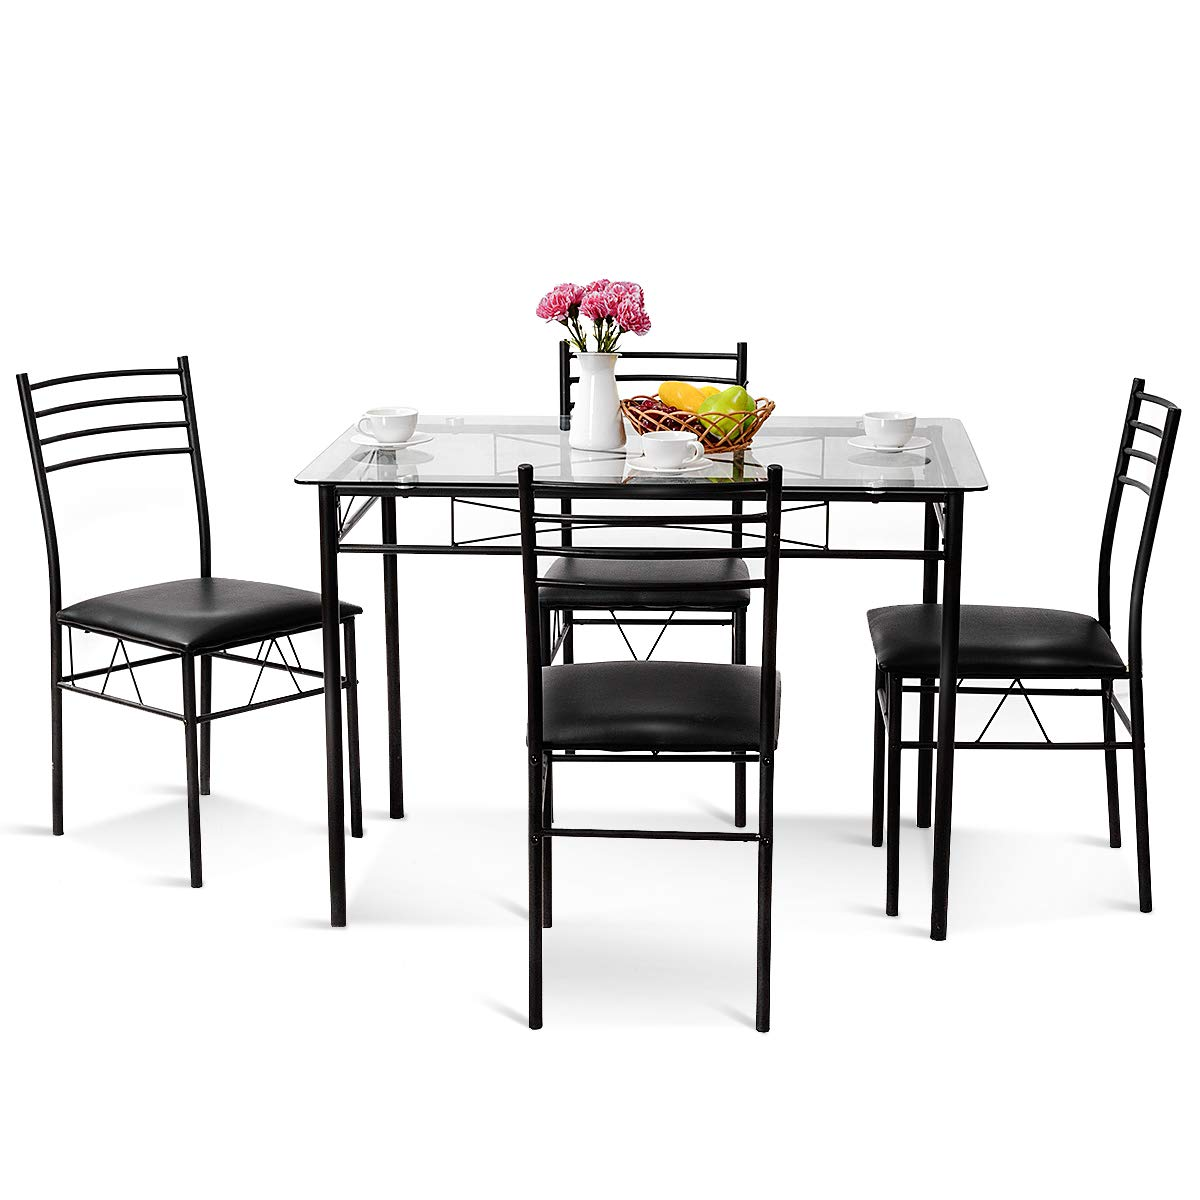 Tangkula Dining Table Set 5 Piece Home Kitchen Dining Room Tempered Glass Top Table and Chairs Breaksfast Furniture, Black